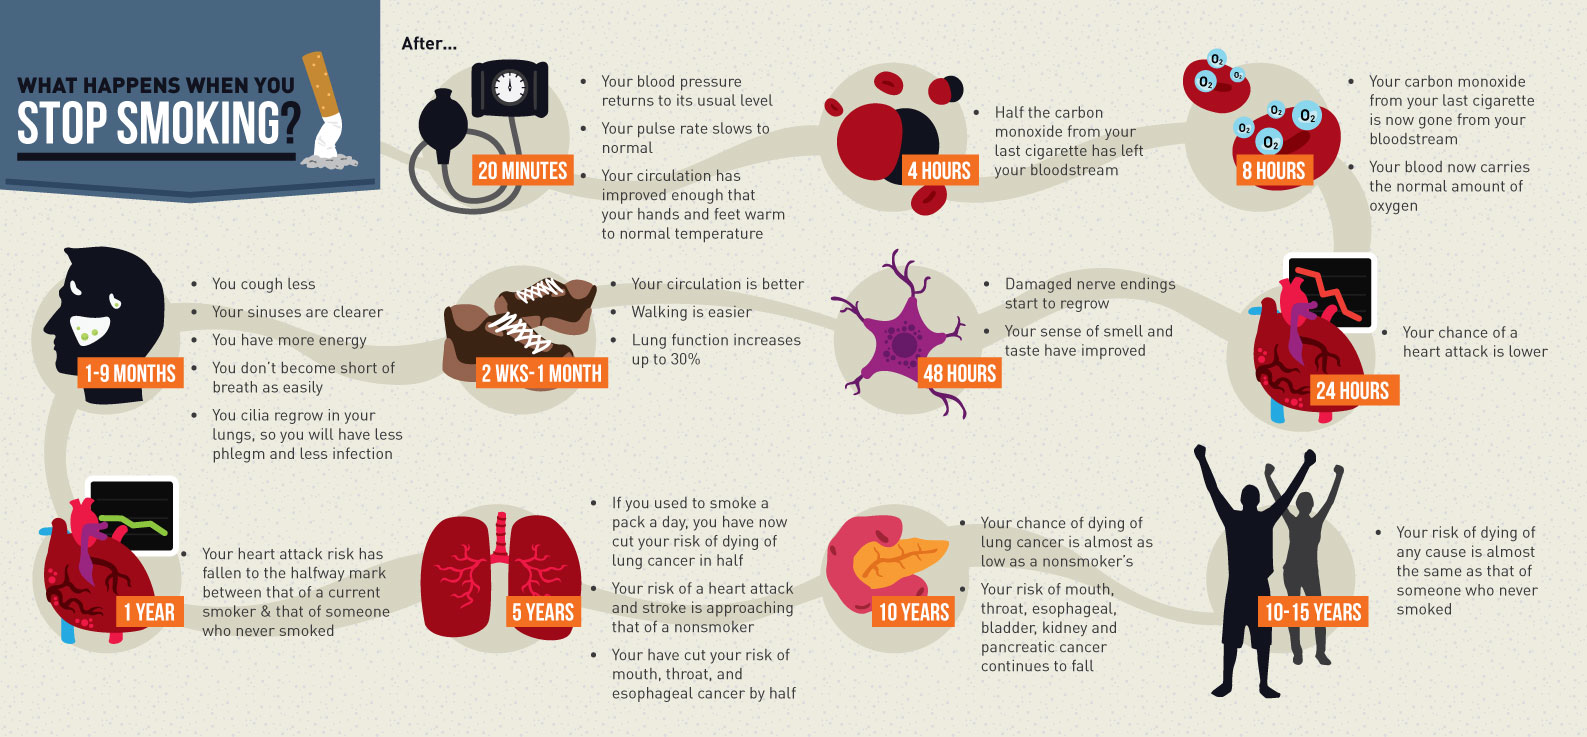 infographic timeline of what happens to your body when you quit smoking